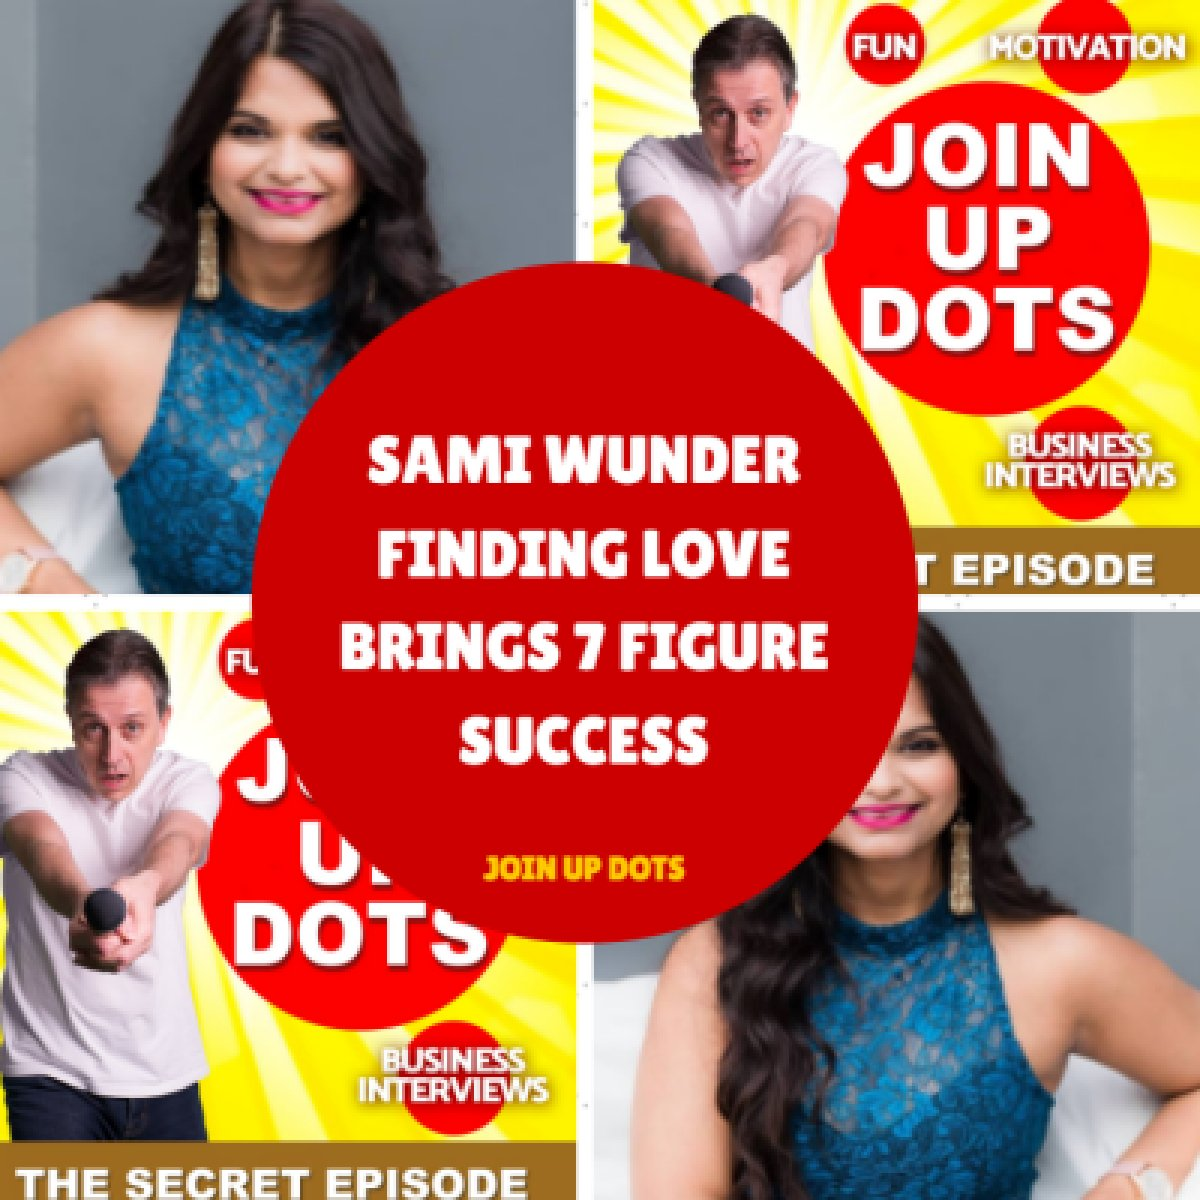 Join Up Dots podcast appearance.